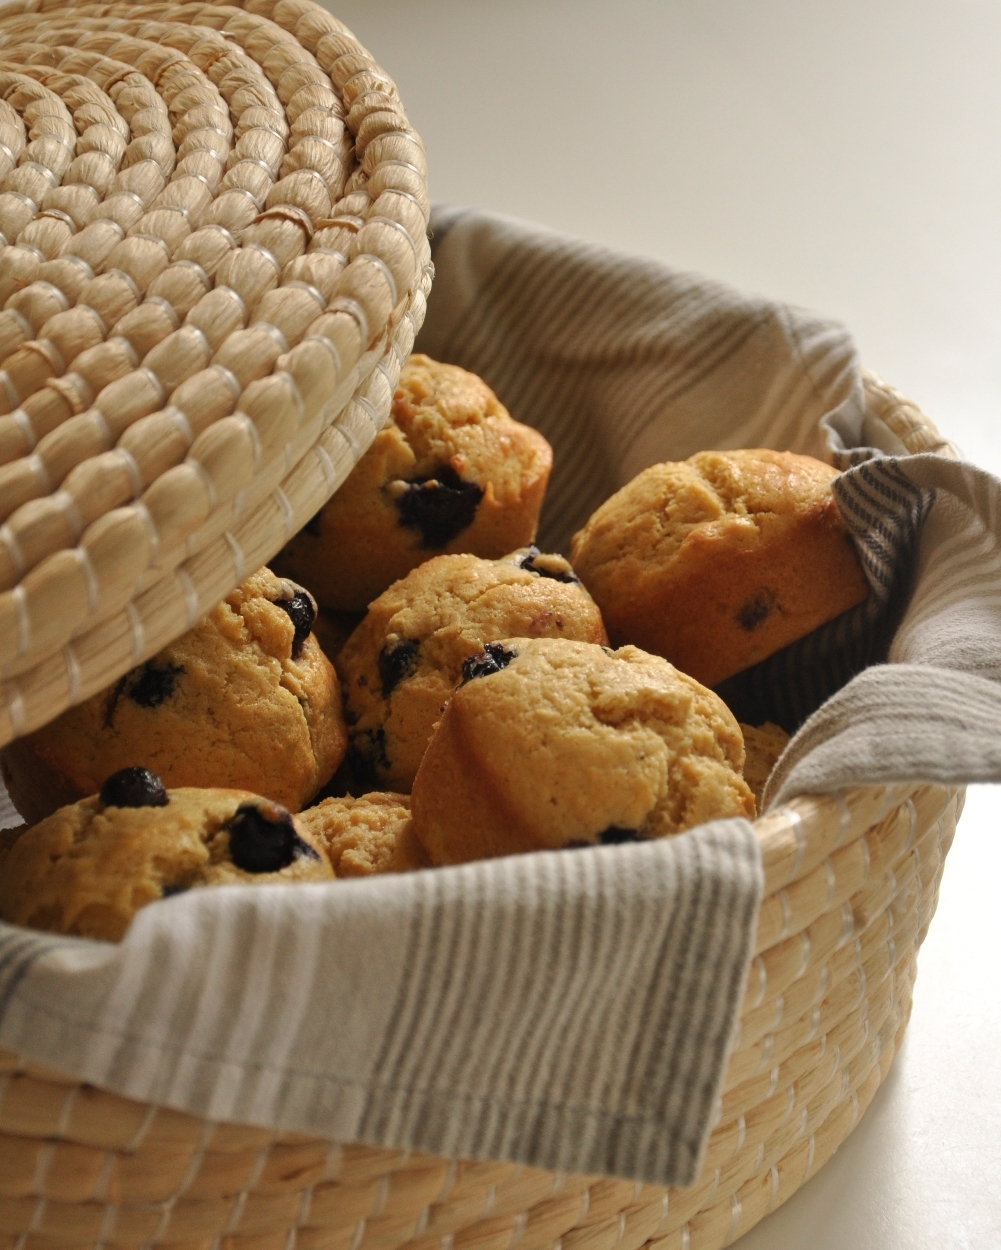 Warm blueberry muffins